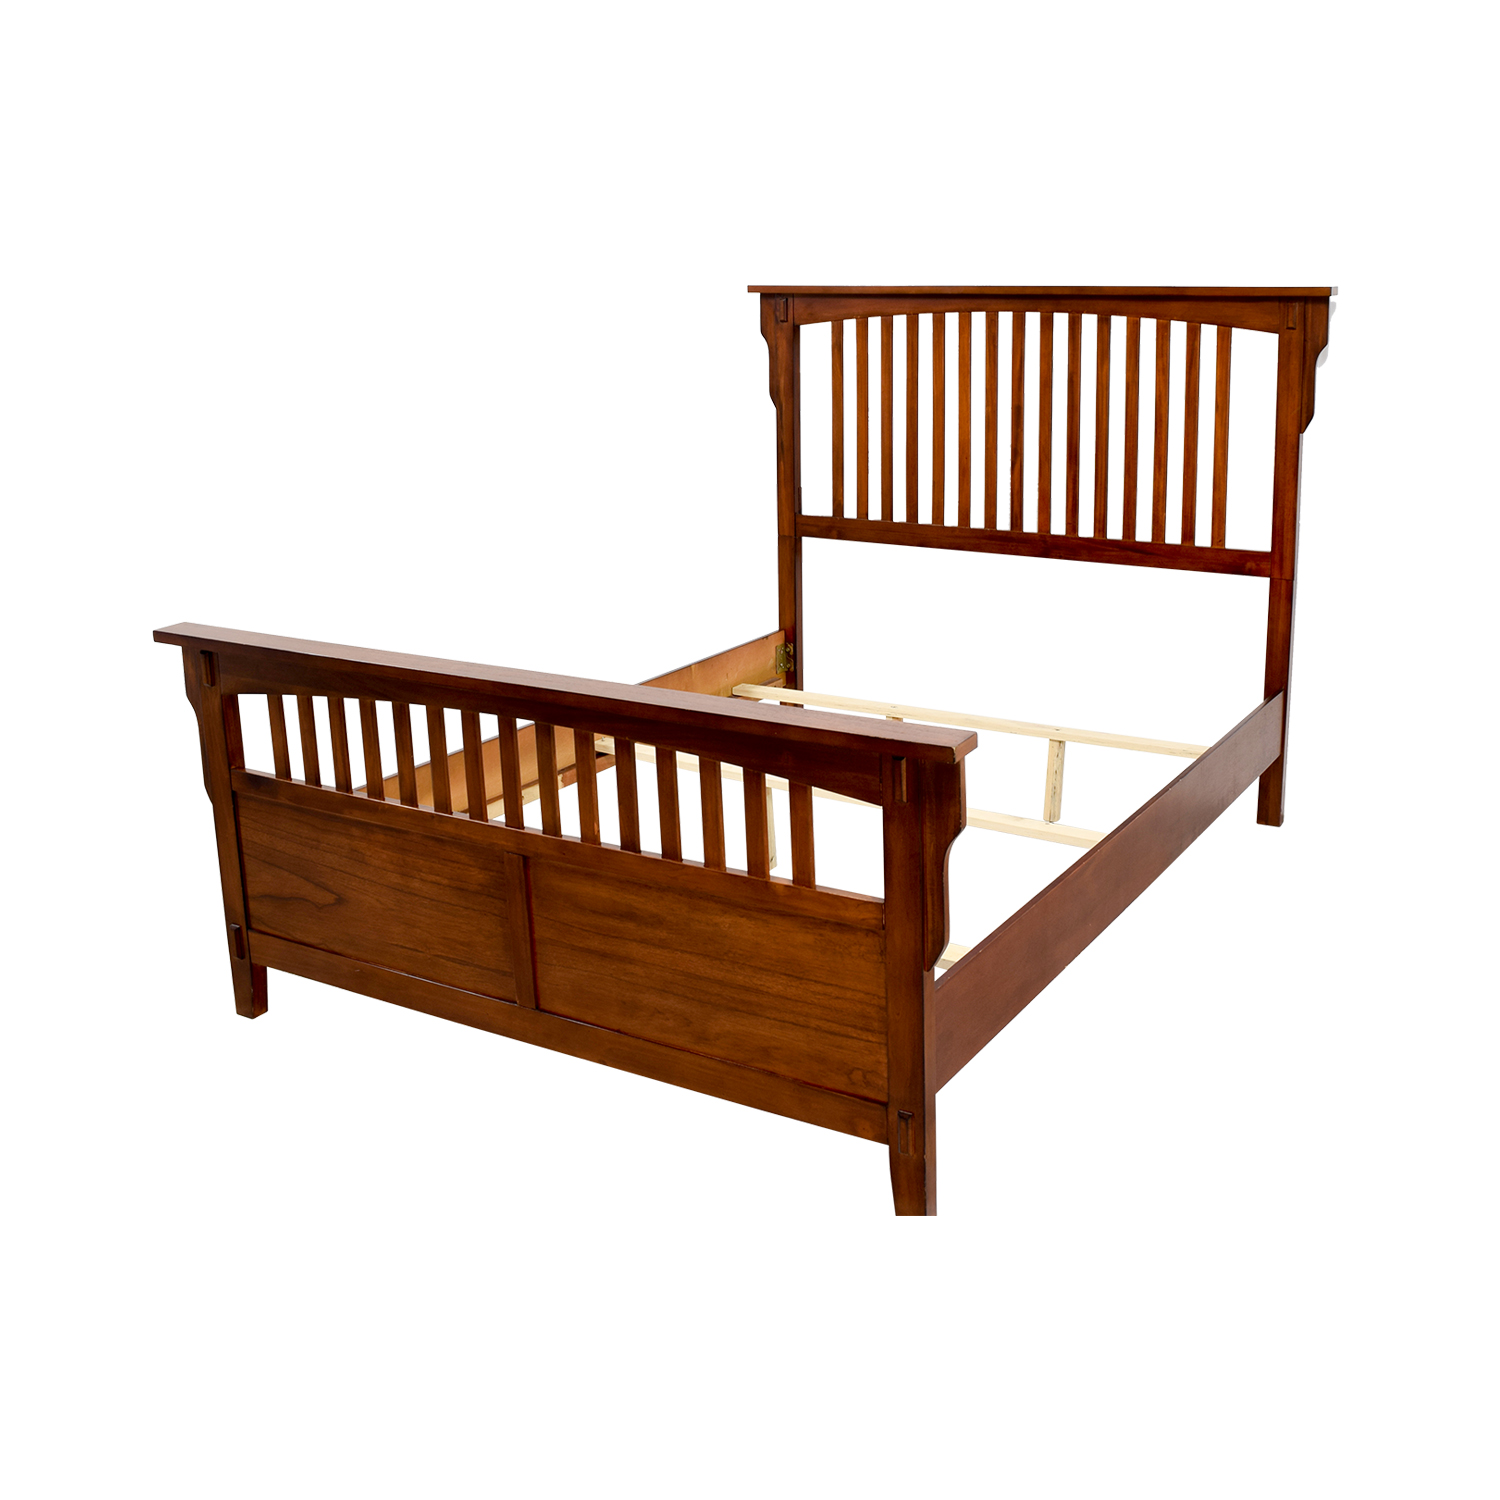 86 off caged wooden queen bed frame beds for Used wooden bed frames